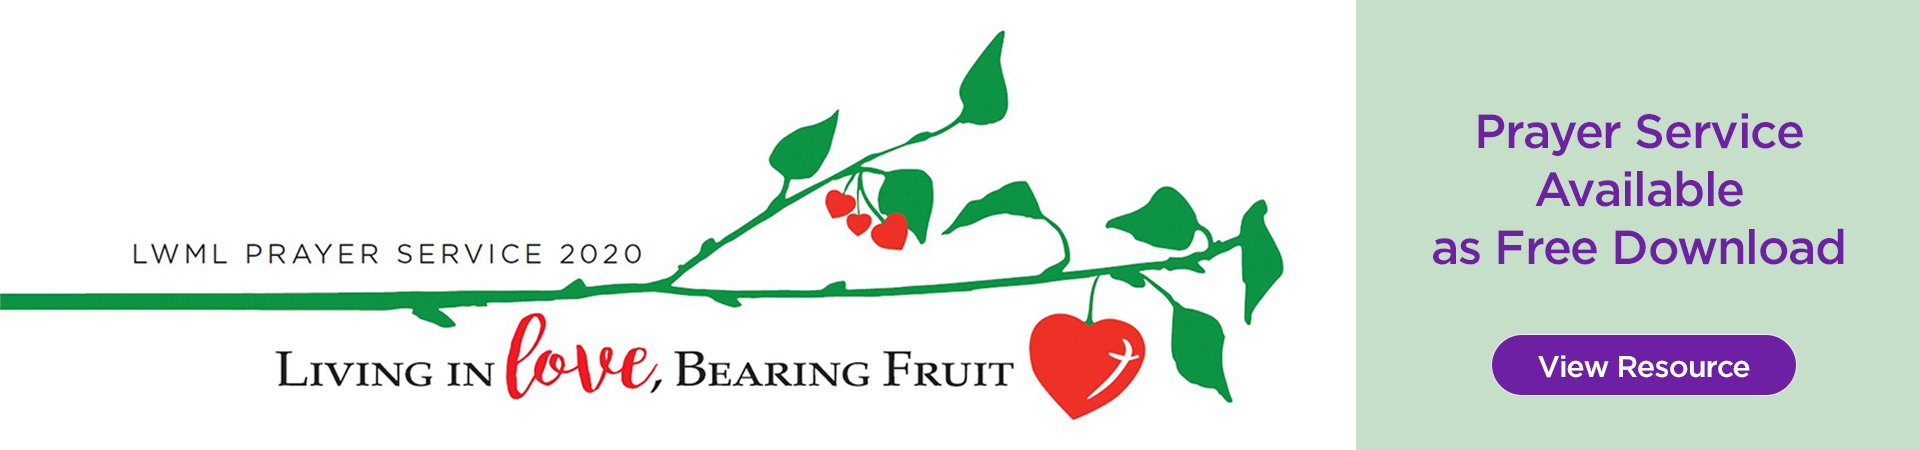 2020 Prayer Service:  Living in Love, Bearing Fruit is available as a free download.